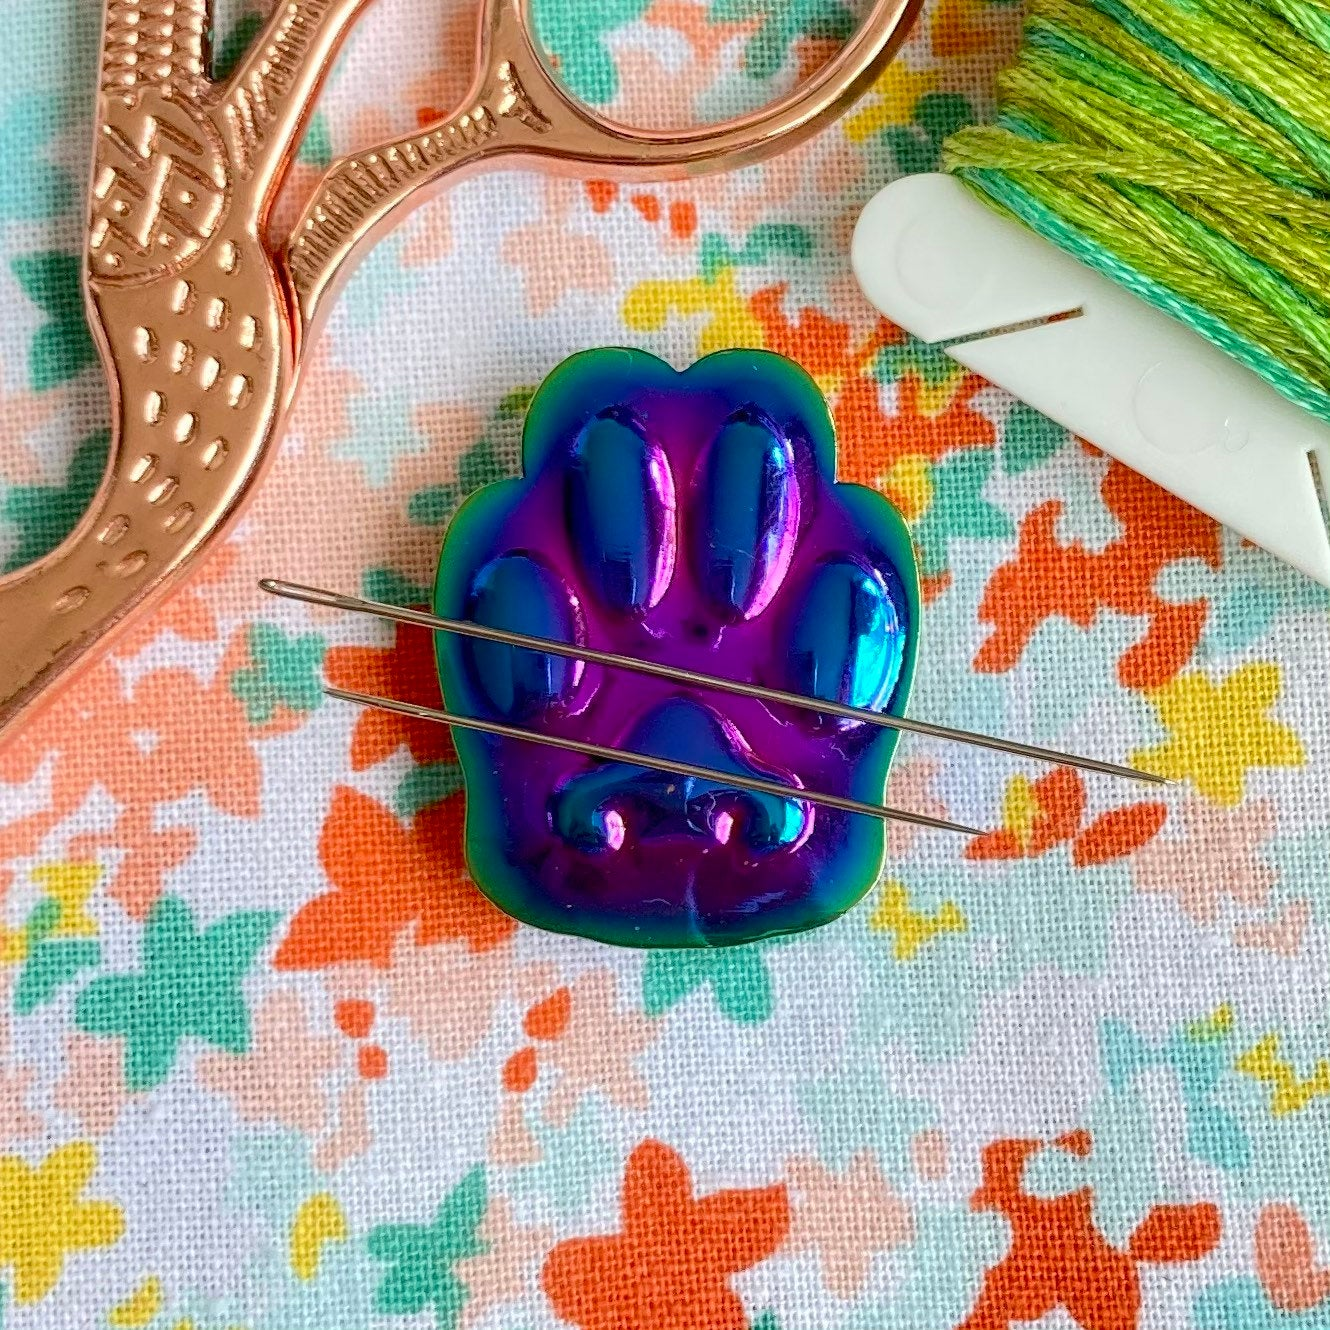 Magnetic Needleminder - 3D Rainbow Cat's Paw 30mm Hard Enamel Pin Converted to Needle Minder with Very Strong N50 Neodymium Magnets